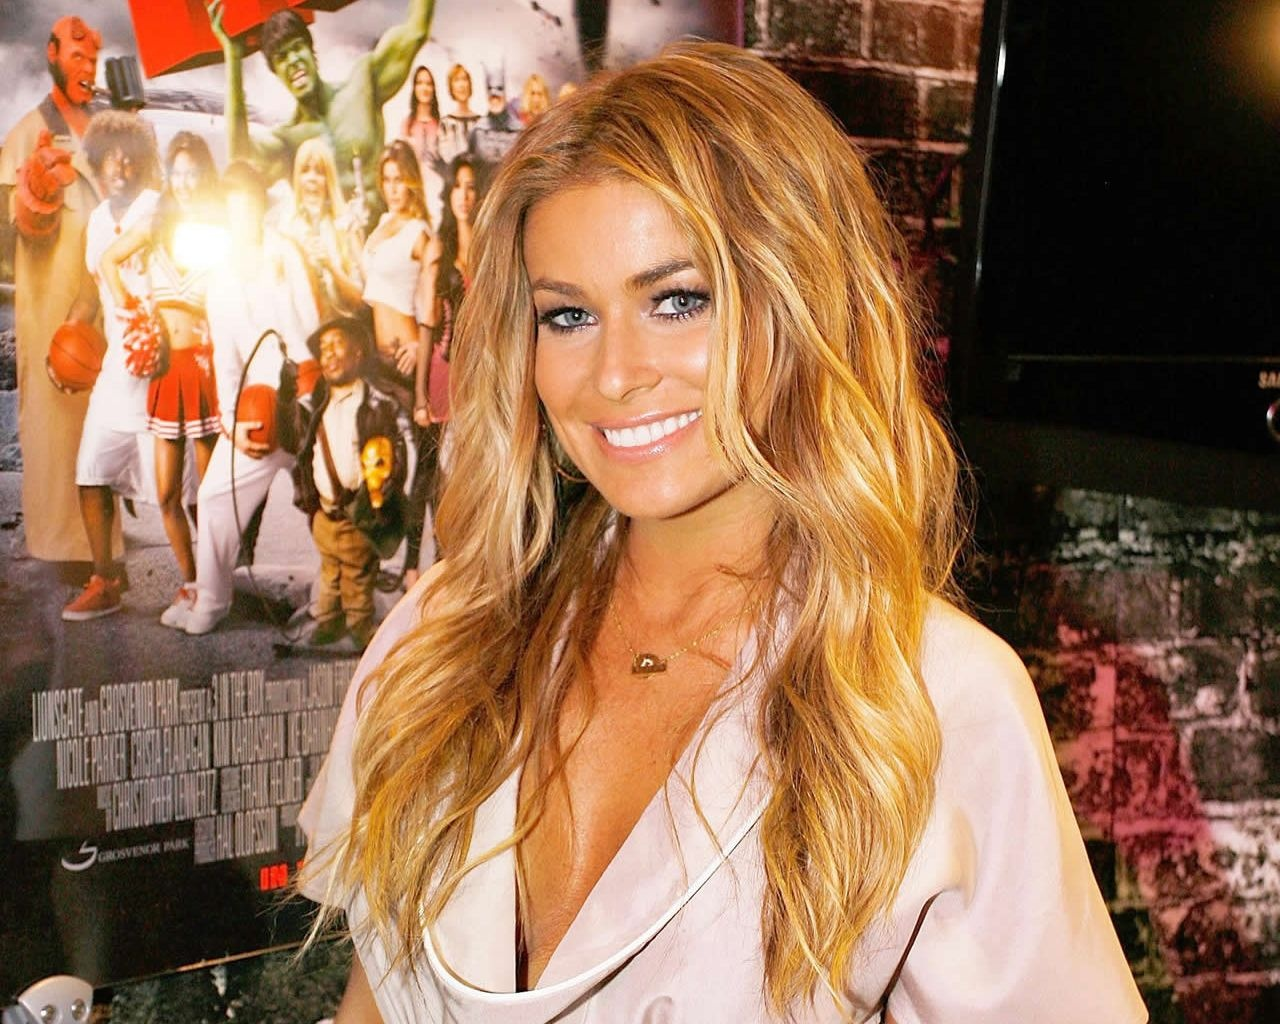 Alpha coders wallpaper abyss ontdek de collectie actrices united - Alpha Coders Wallpaper Abyss Ontdek De Collectie Actrices United 6 Carmen Electra Disaster Movie 1280 Download